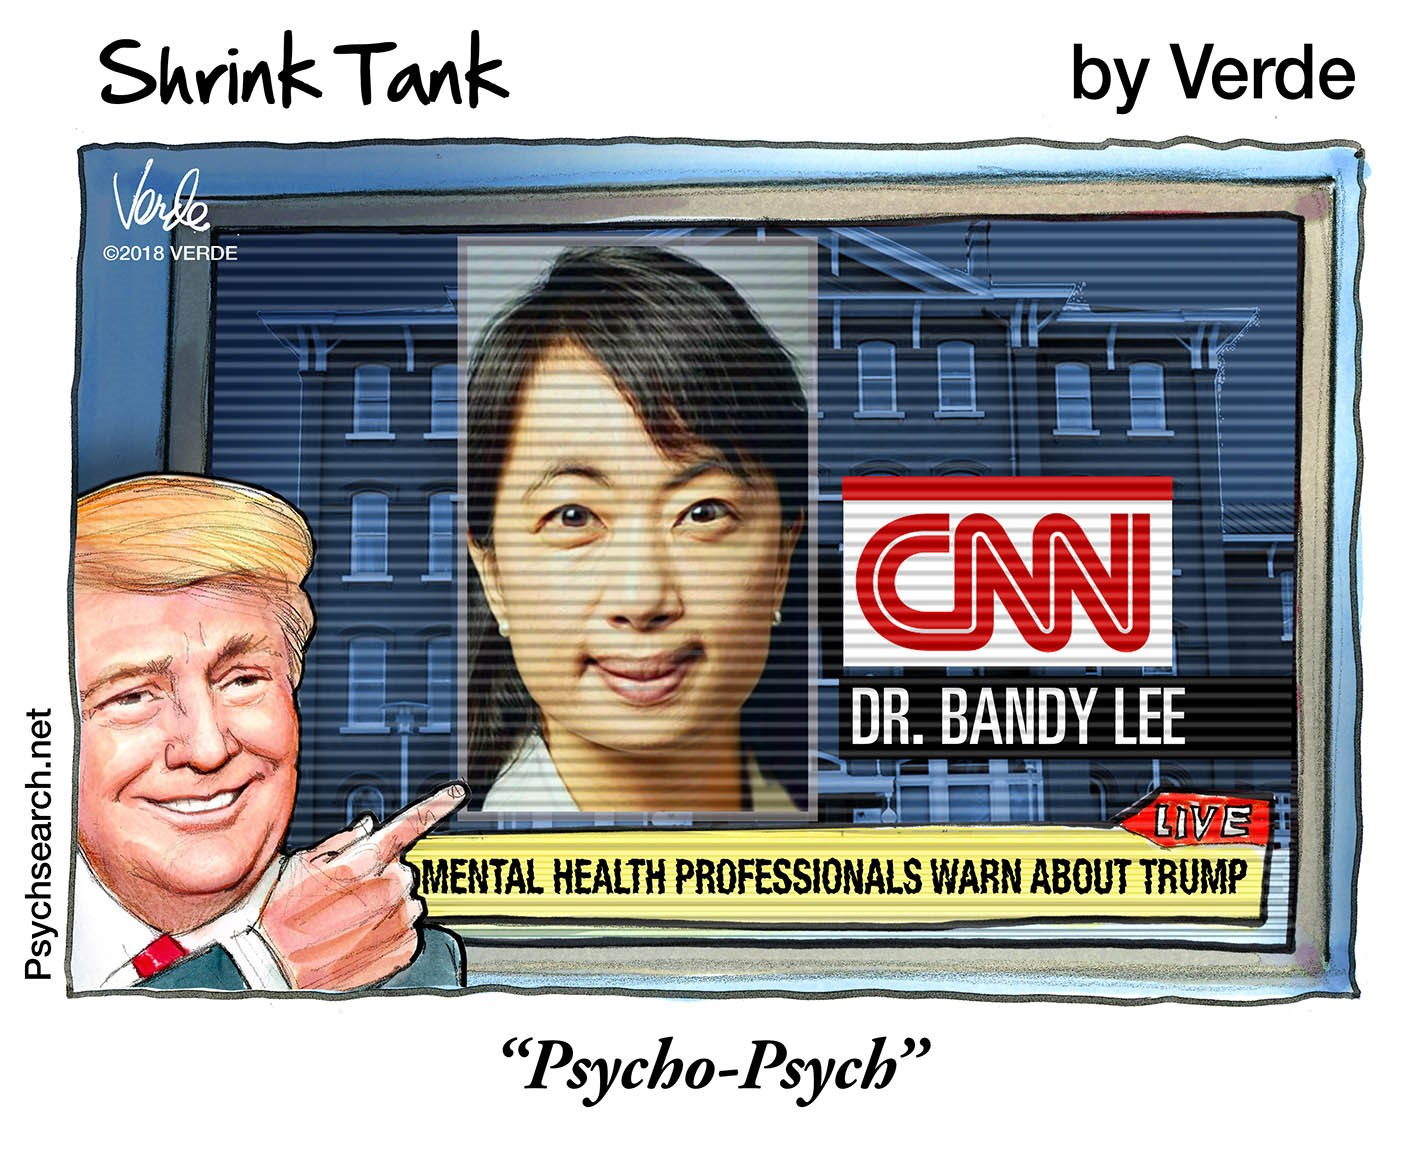 Psychiatrist Bandy Lee